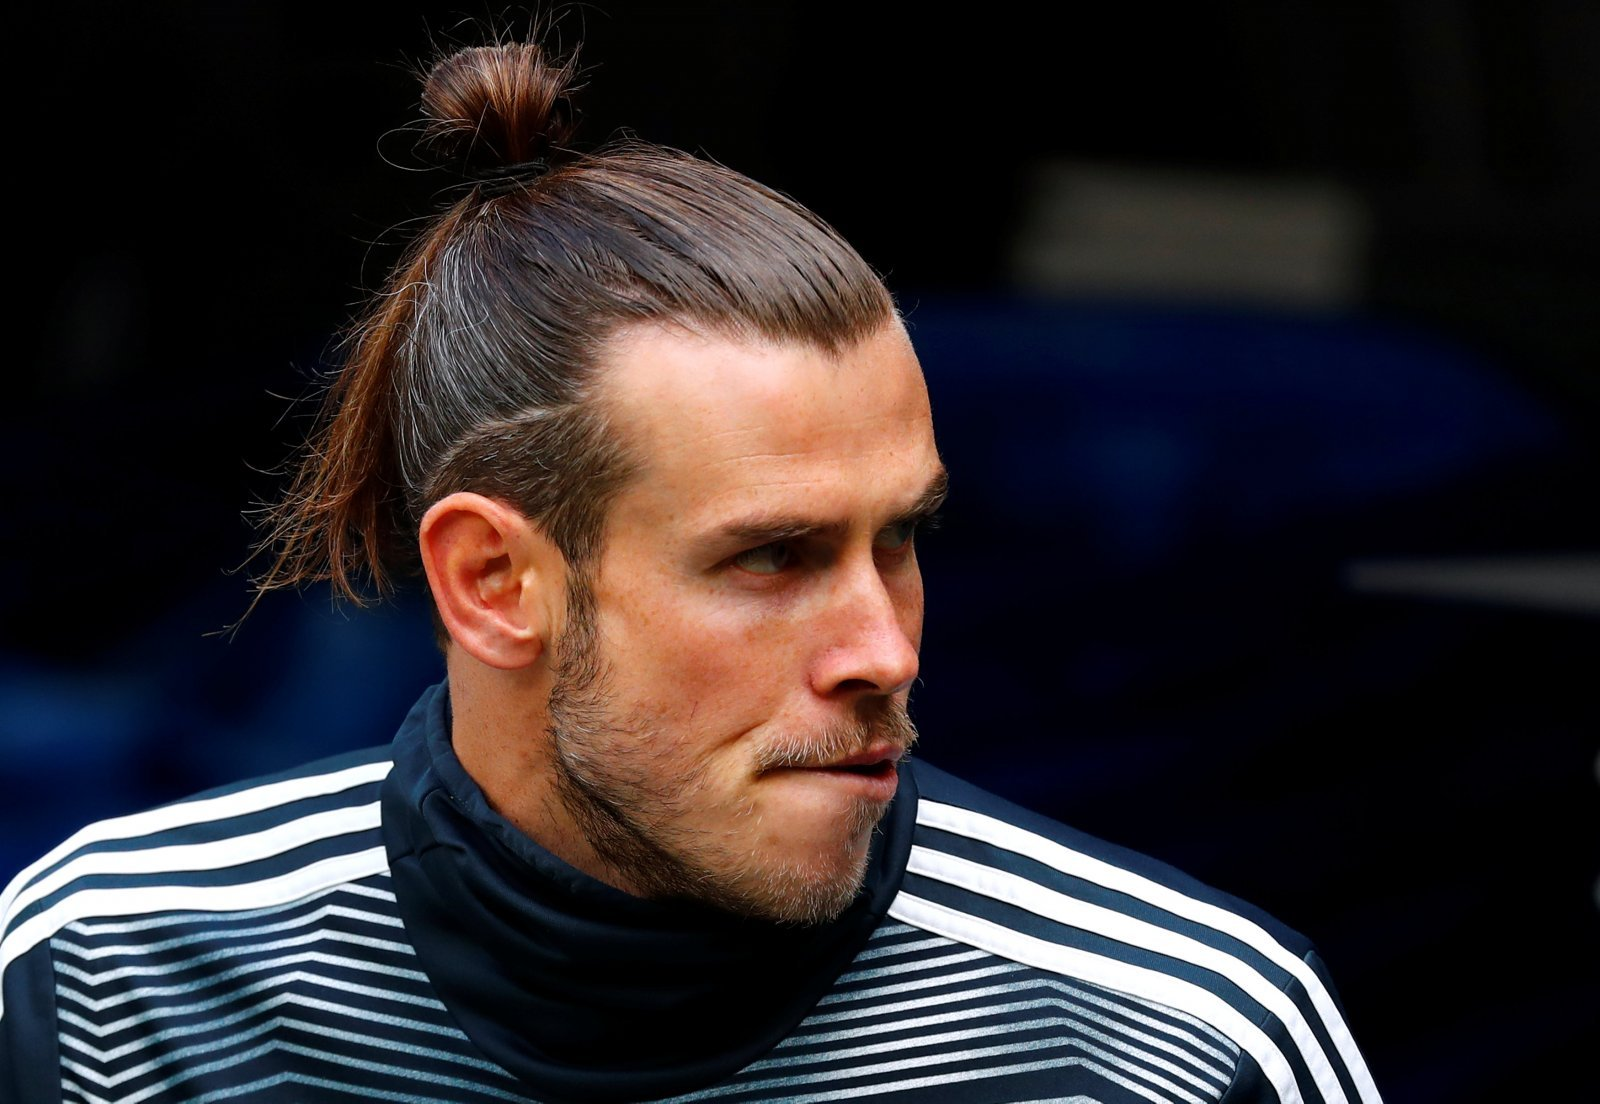 Tottenham fans on Twitter getting excited as Pochettino comments on Gareth Bale